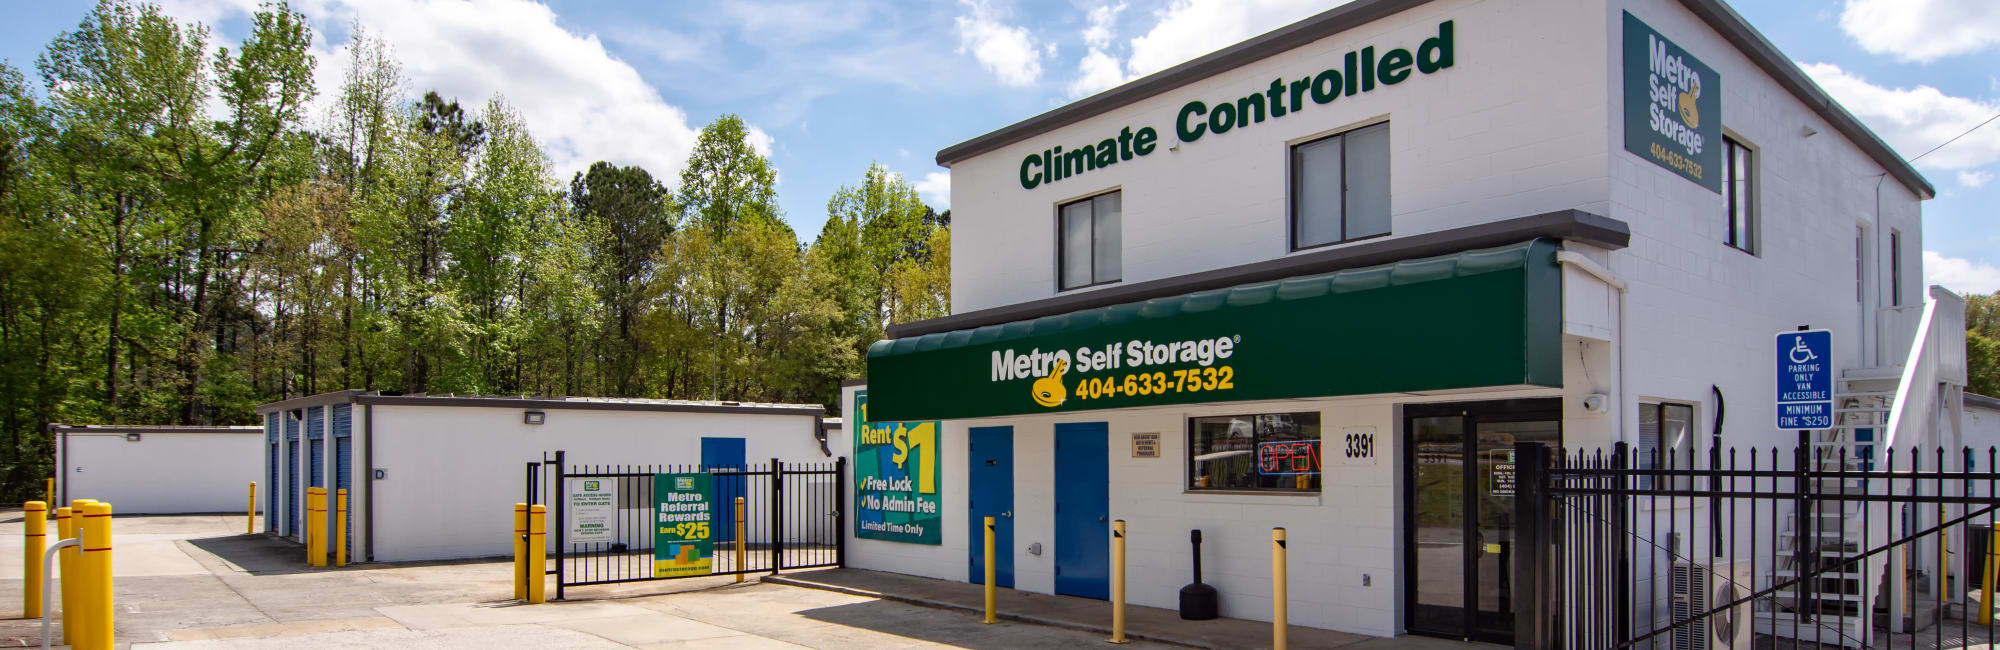 Metro Self Storage in Decatur, GA